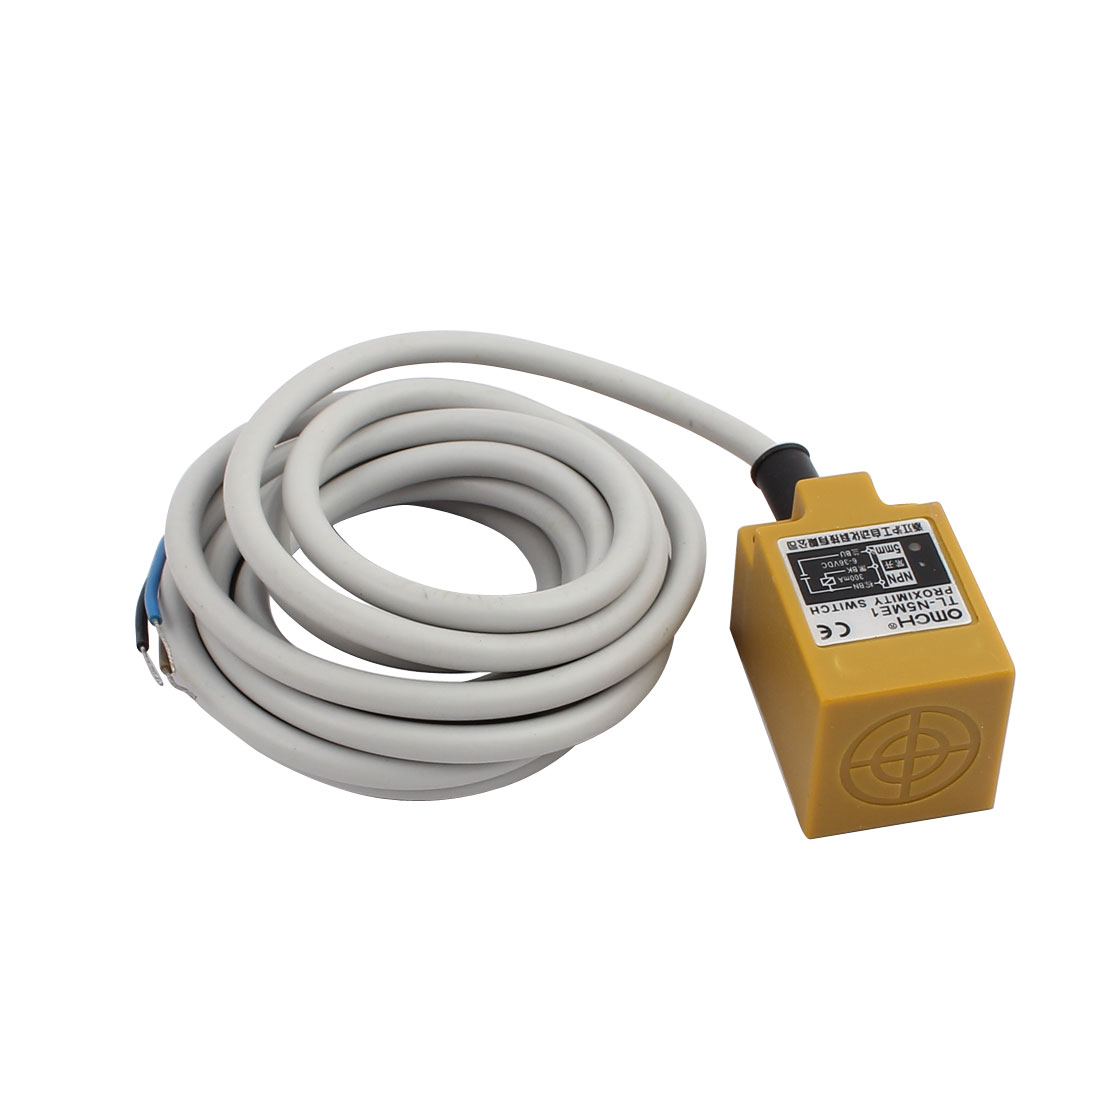 Proximity Sensor Without Wires Wire Center